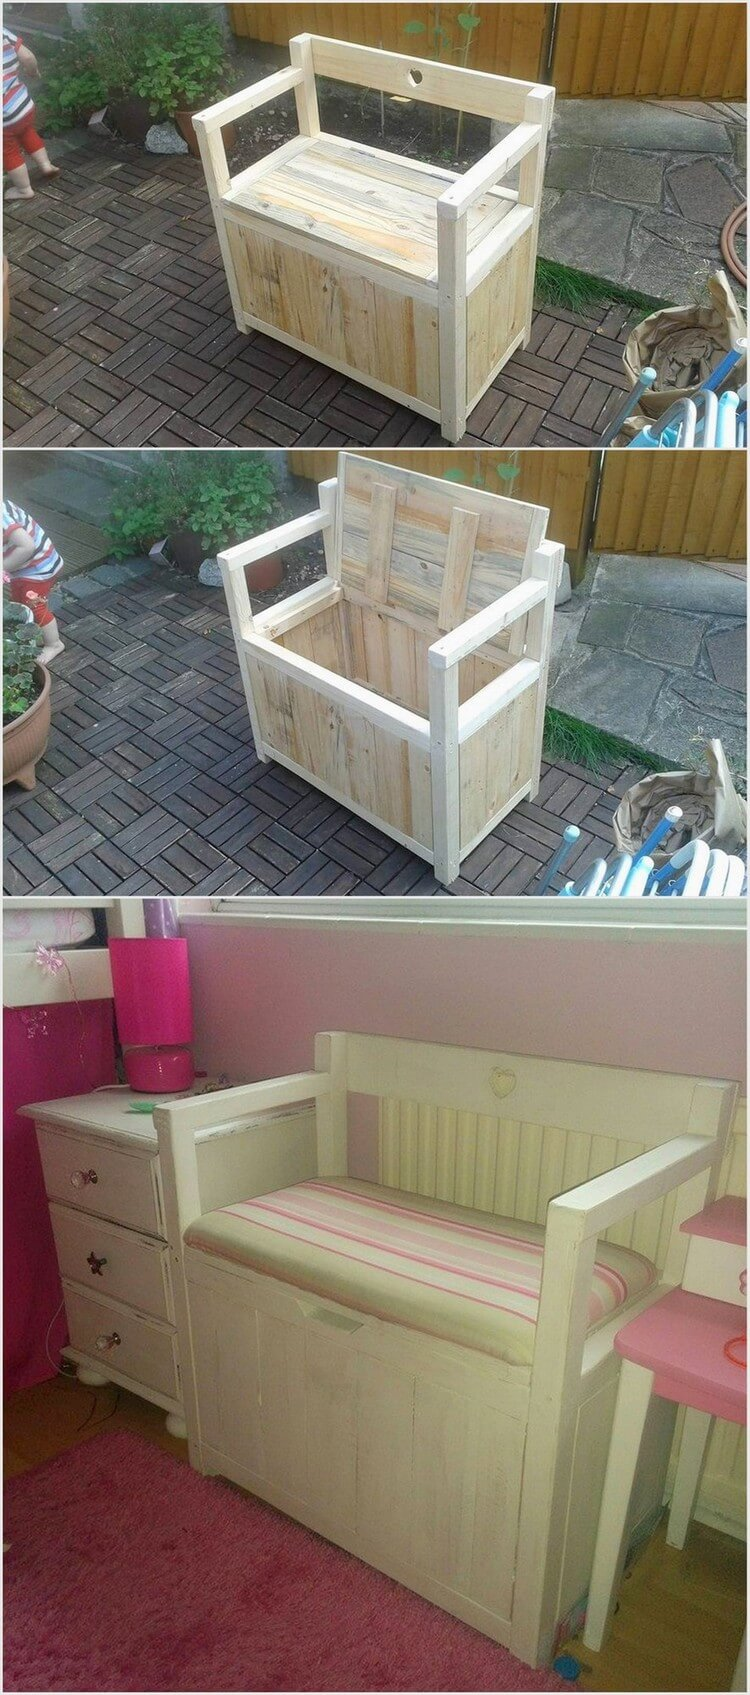 Pallet Seat with Toy Storage Box